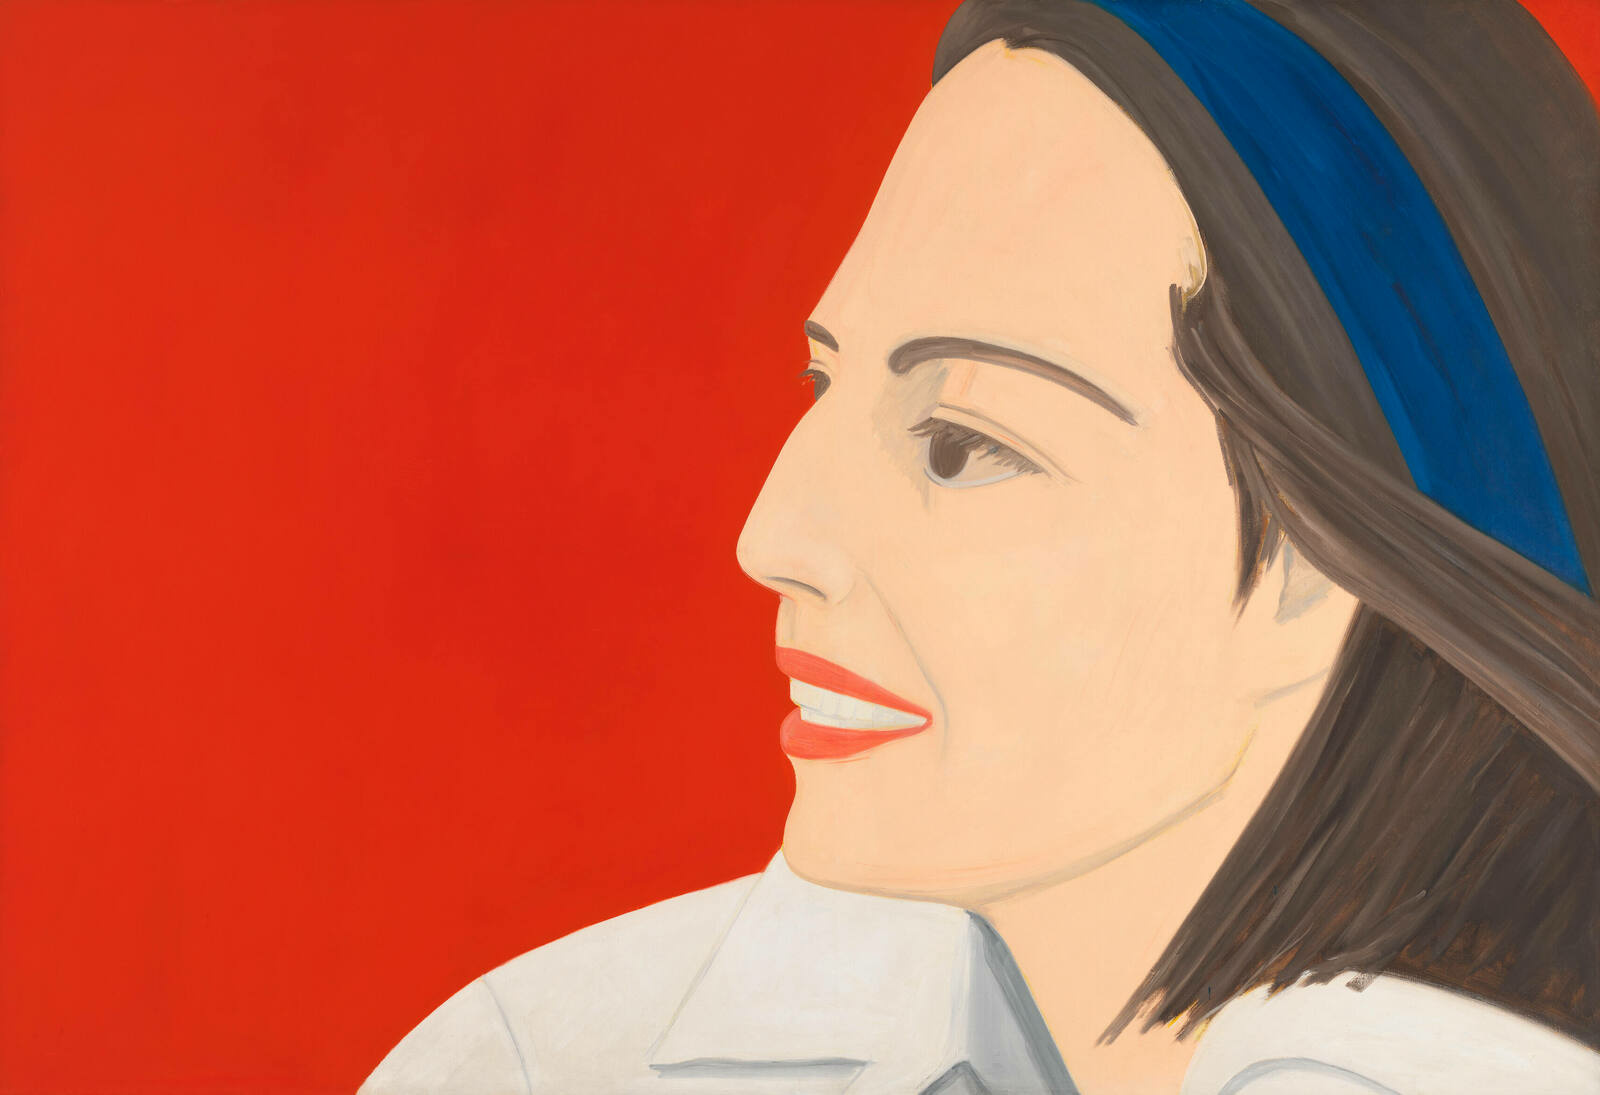 A woman wearing red lipstick smiles softly, her face in profile against a more vivid red background.